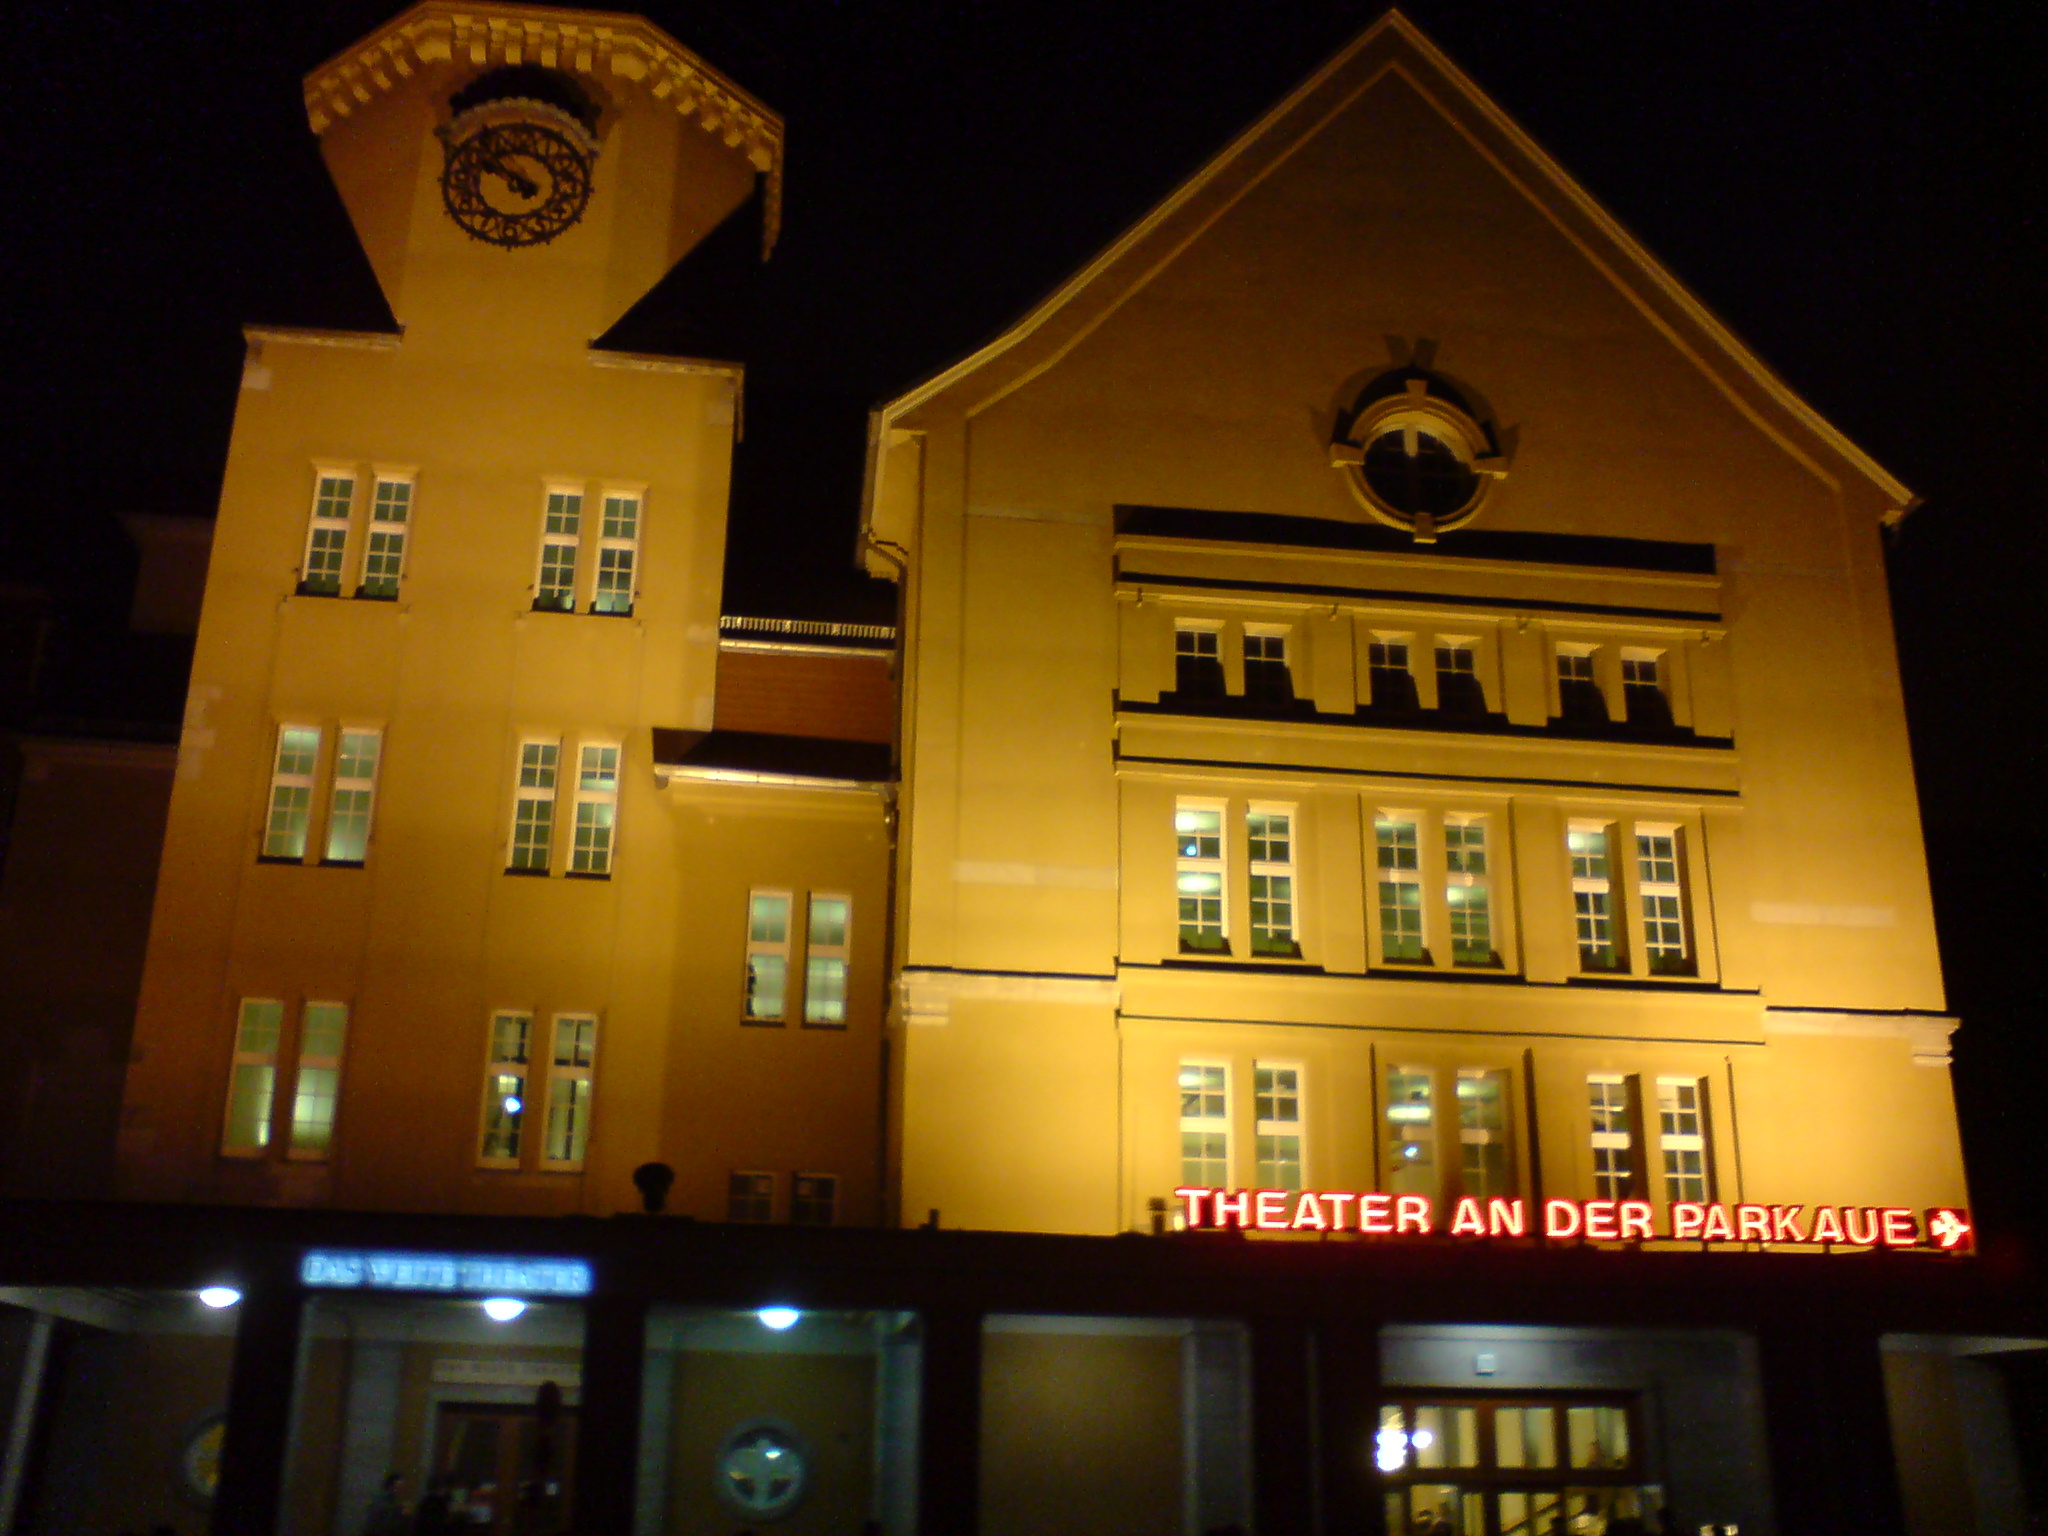 theater-in-der-parkaue.JPG